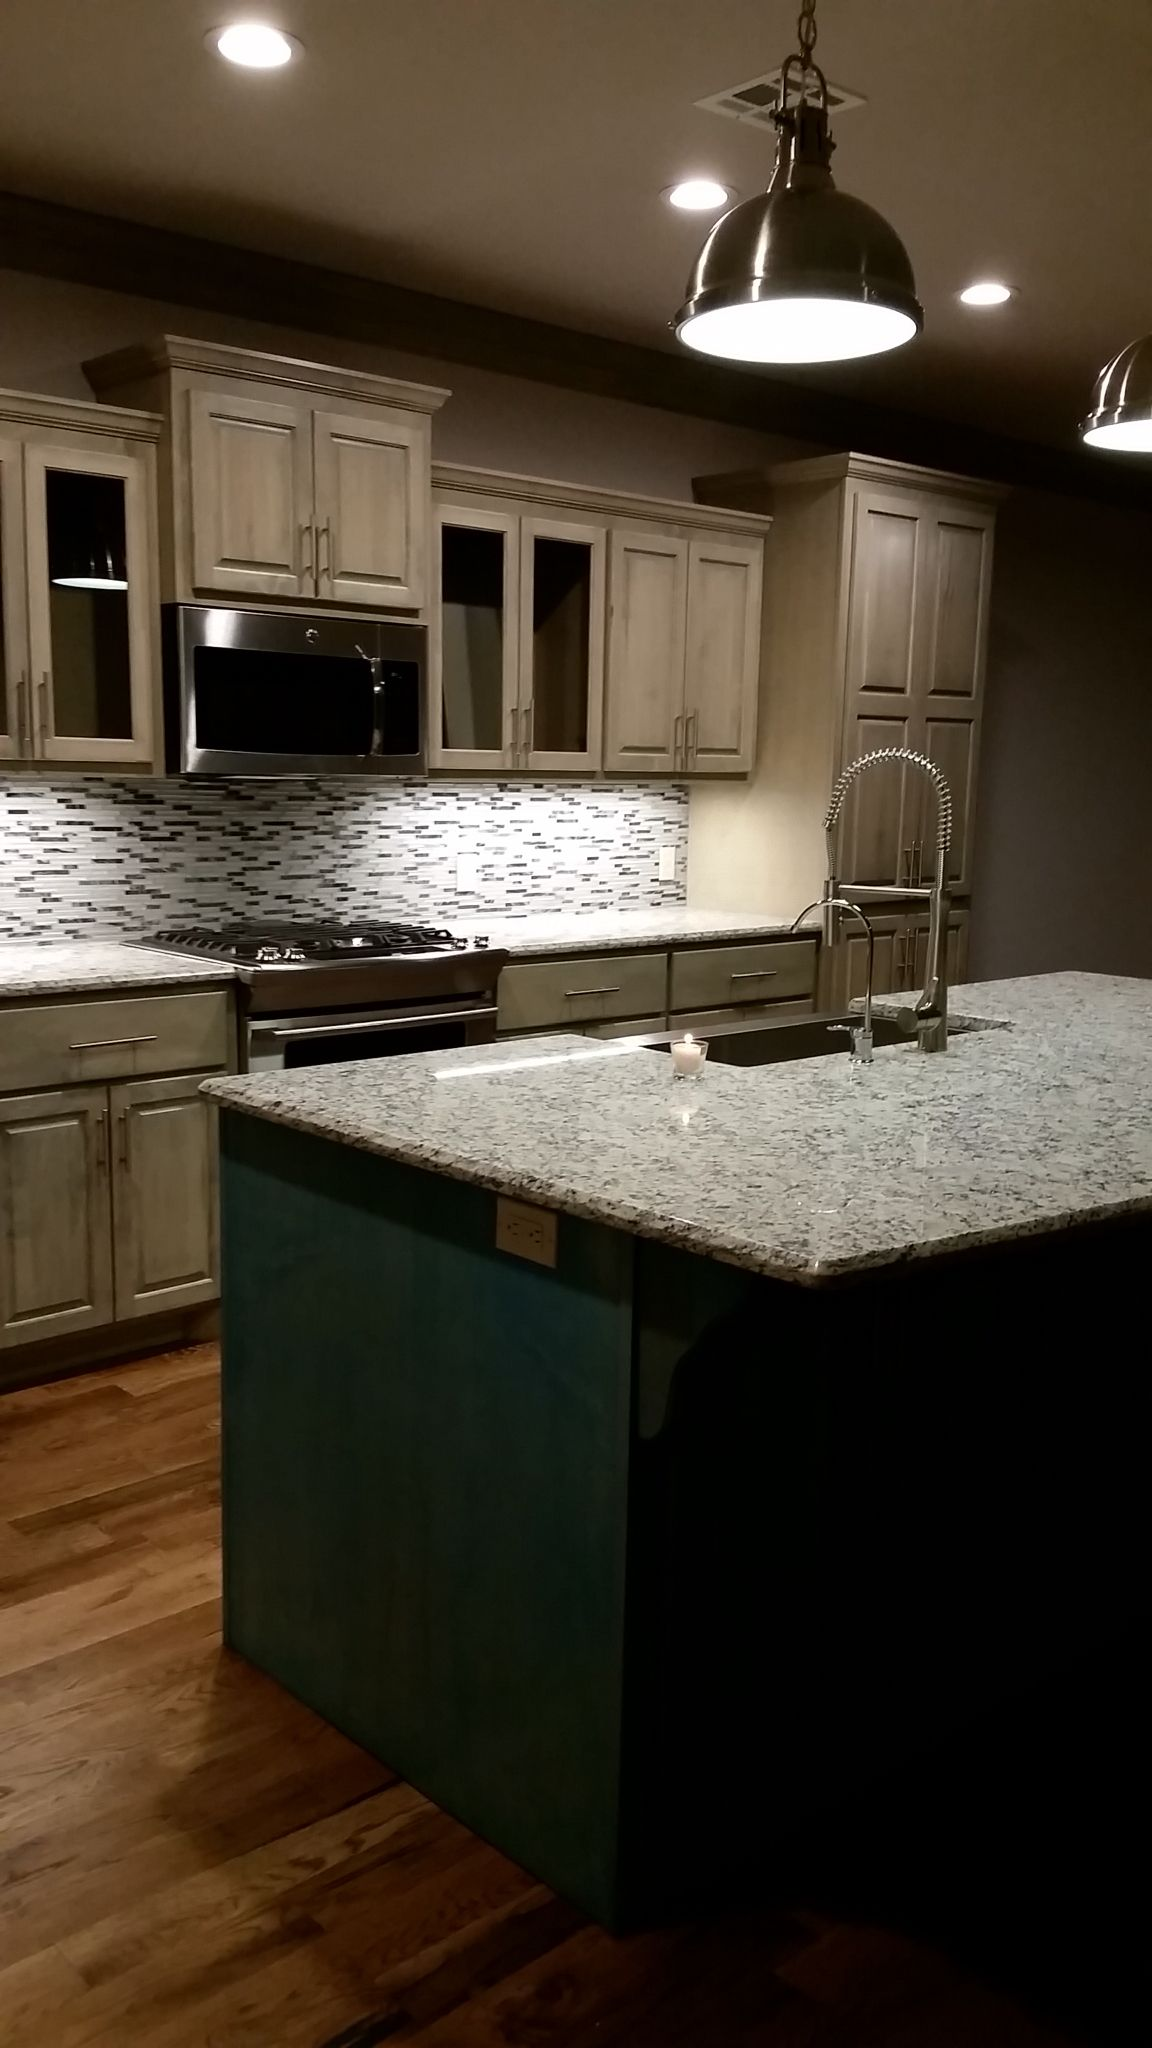 Dallas White 3 Cm Granite Used In This Kitchen With Stainless Farm House Sink Glass B Used Kitchen Cabinets White Granite Kitchen Granite Countertops Kitchen